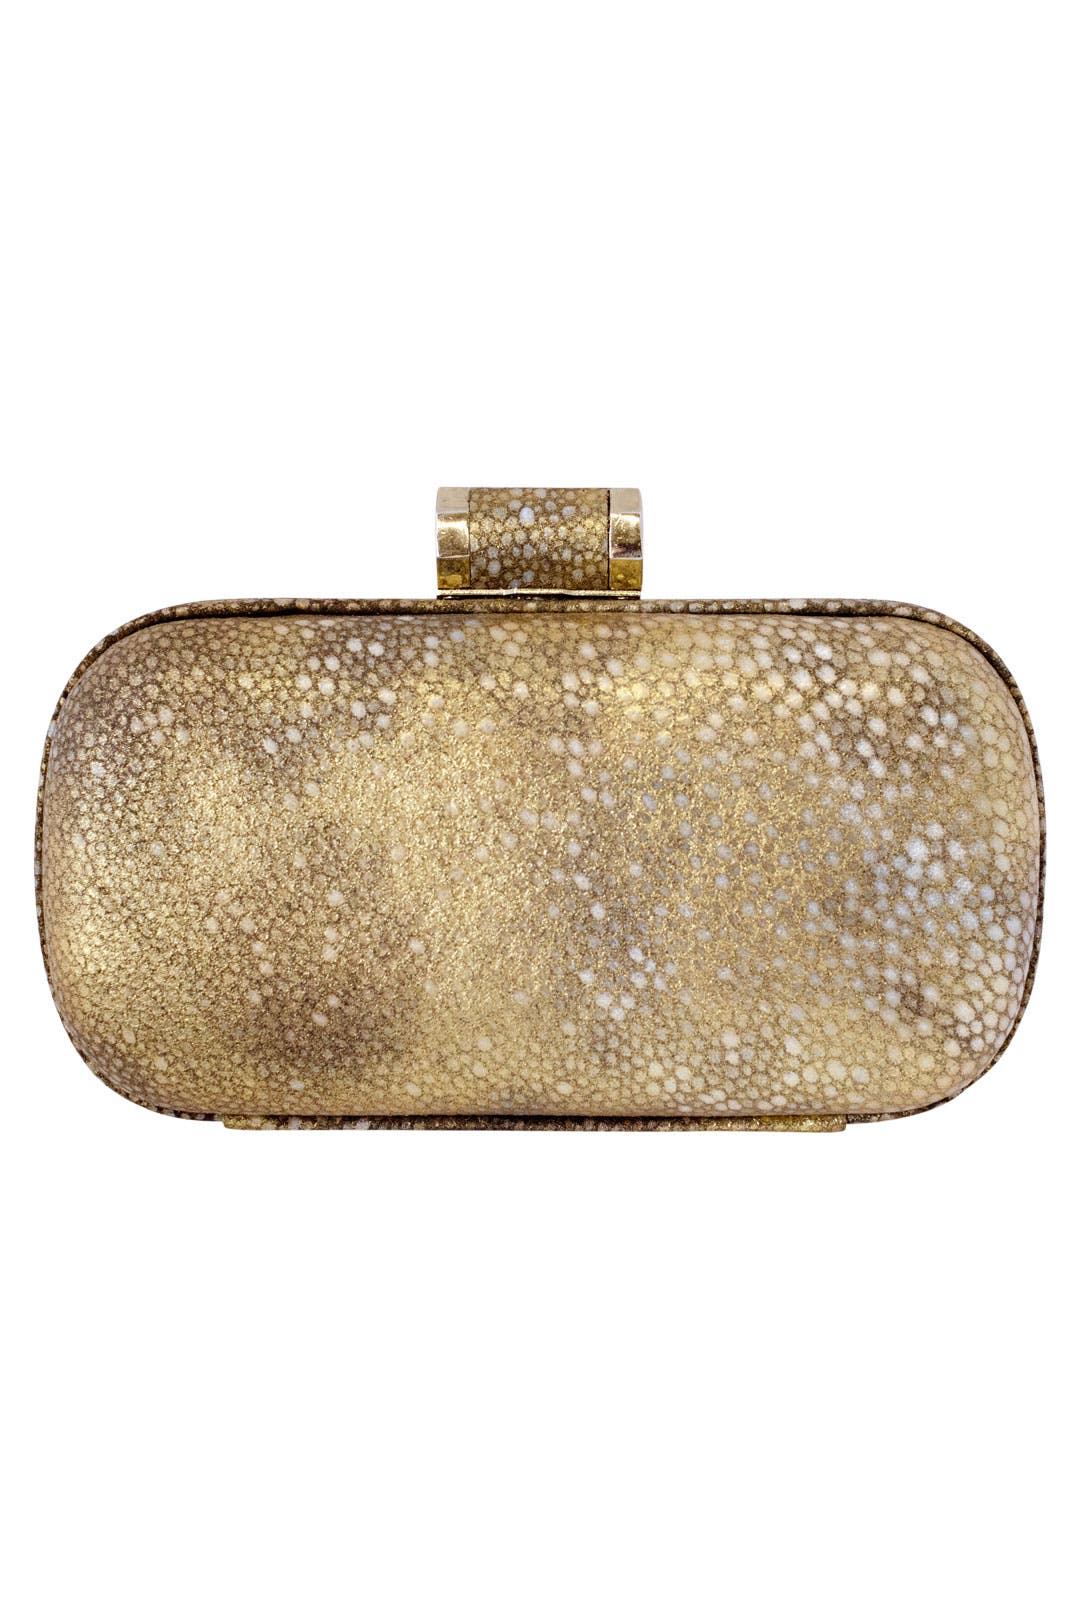 Gold Tie-Dye Pebble Clutch by Halston Heritage Handbags